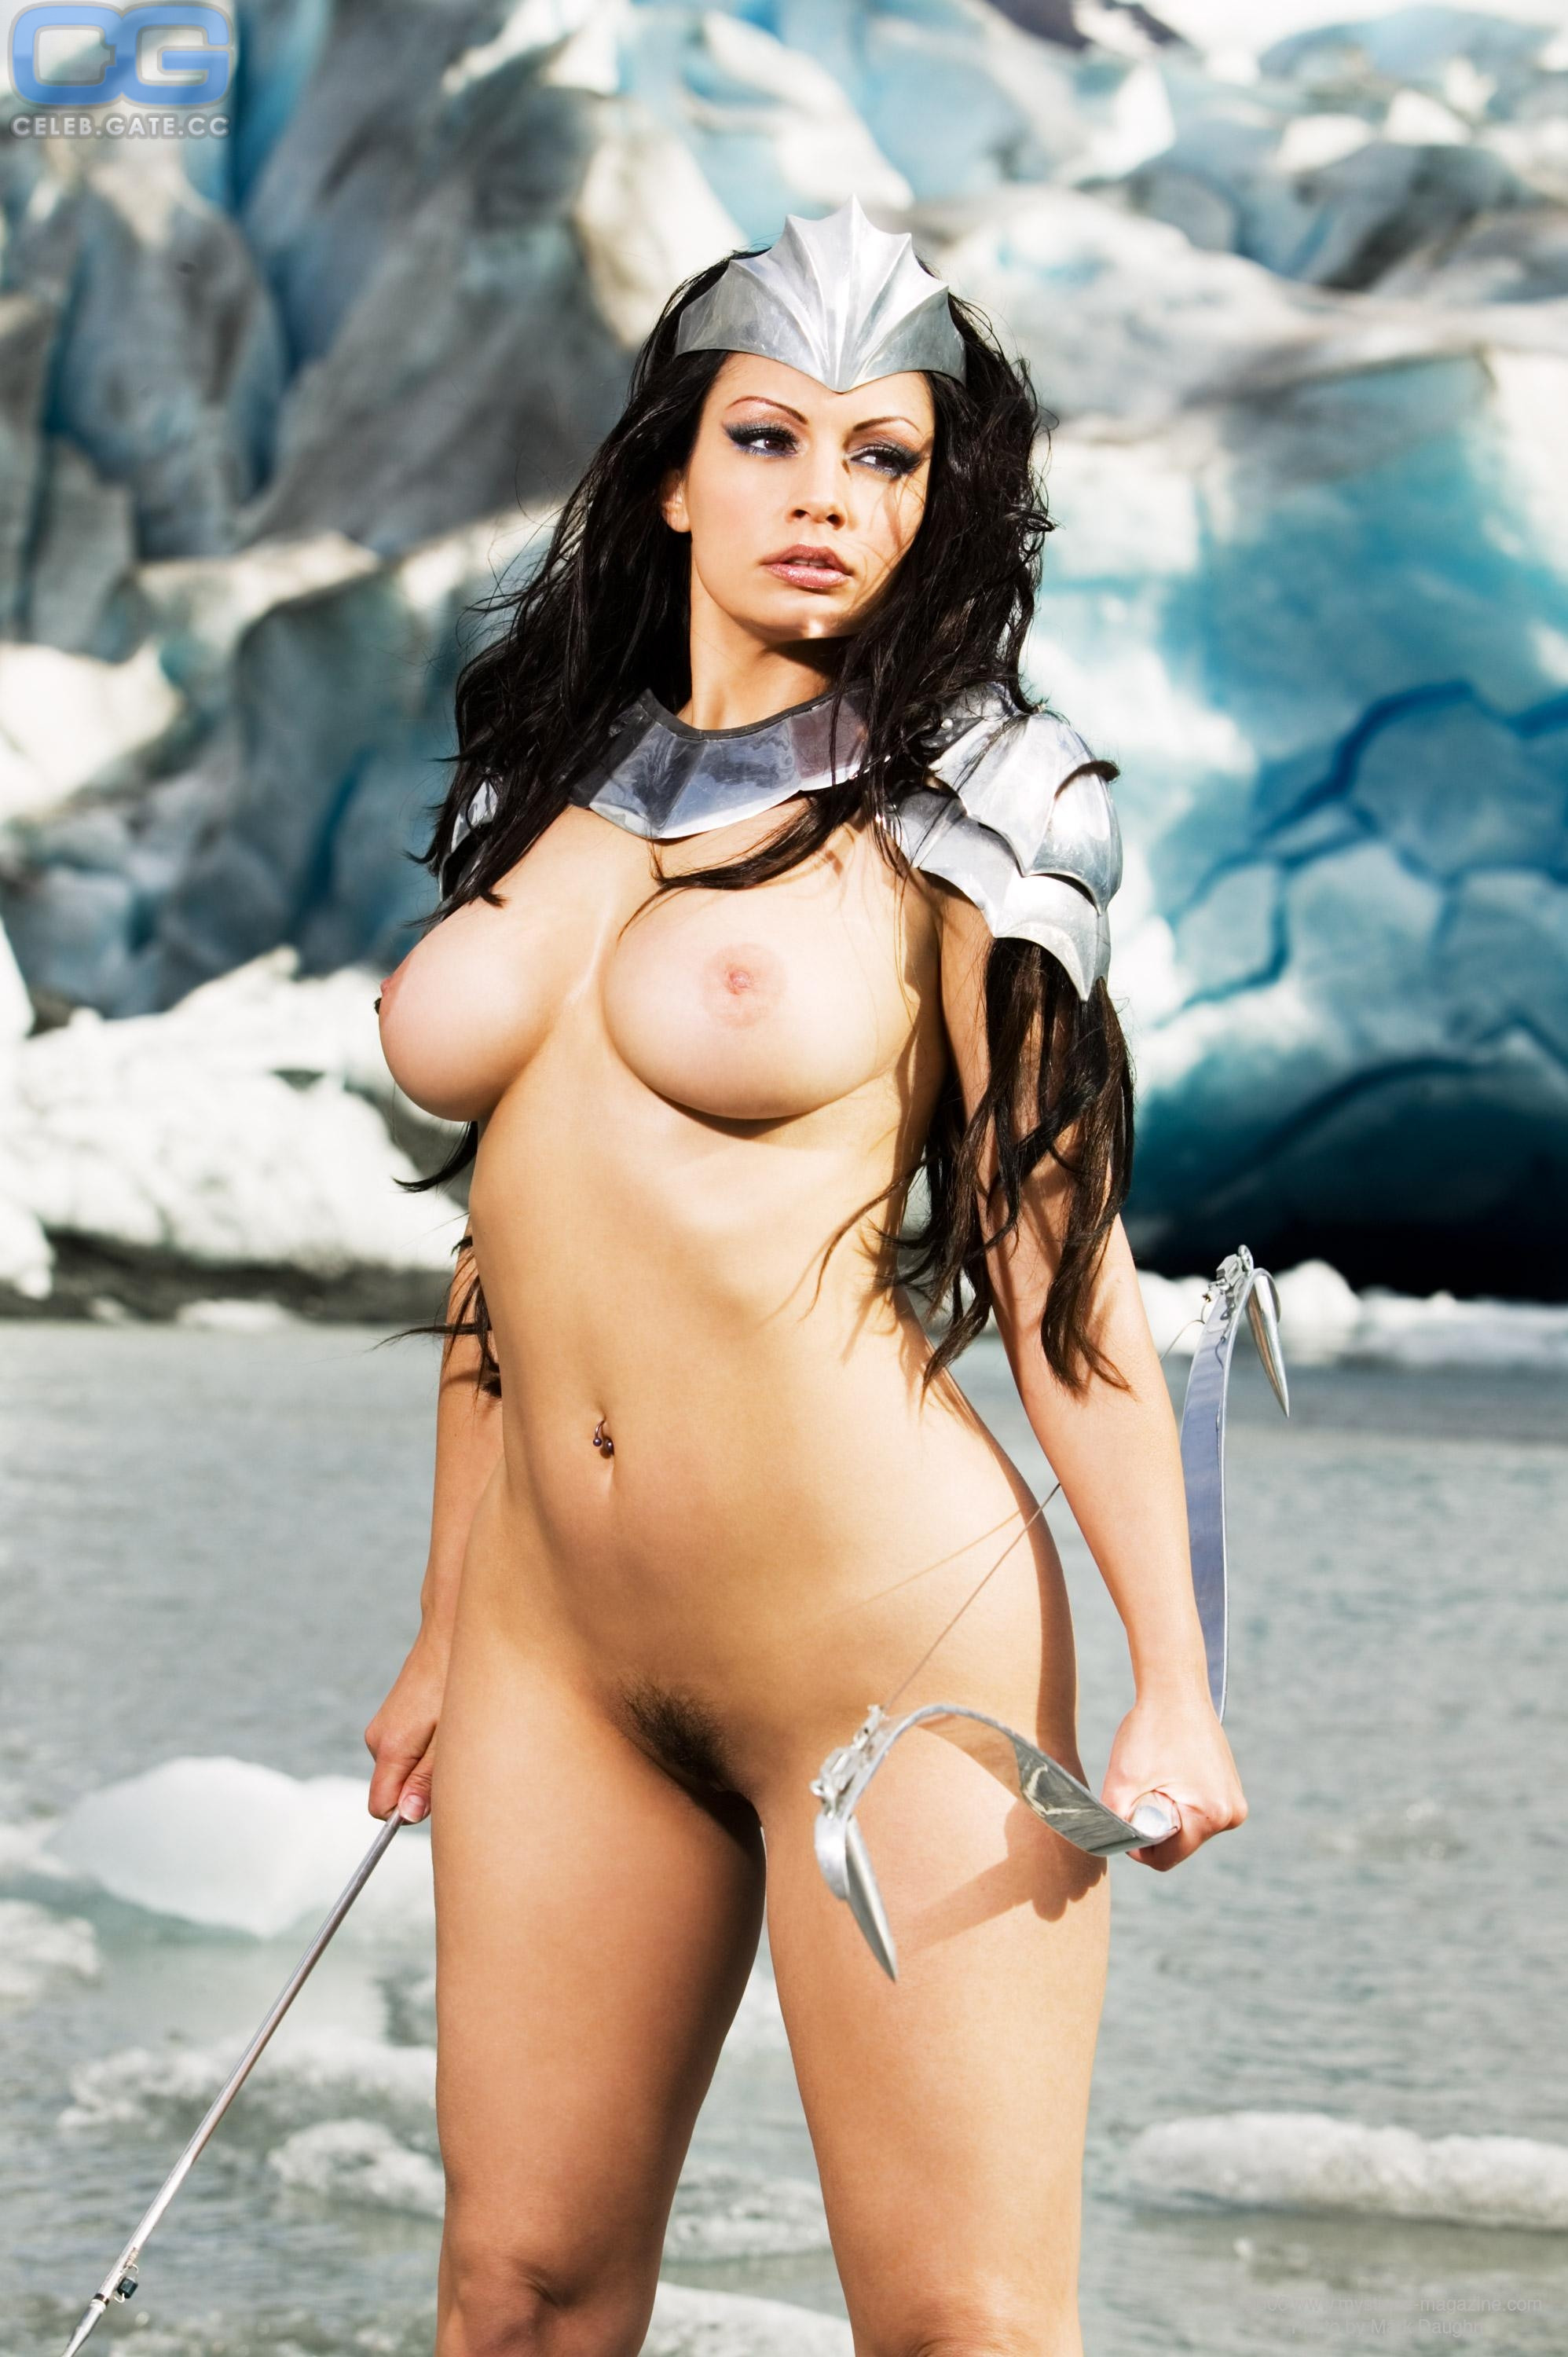 Aria Giovanni Porn Pictures aria giovanni nude, pictures, photos, playboy, naked